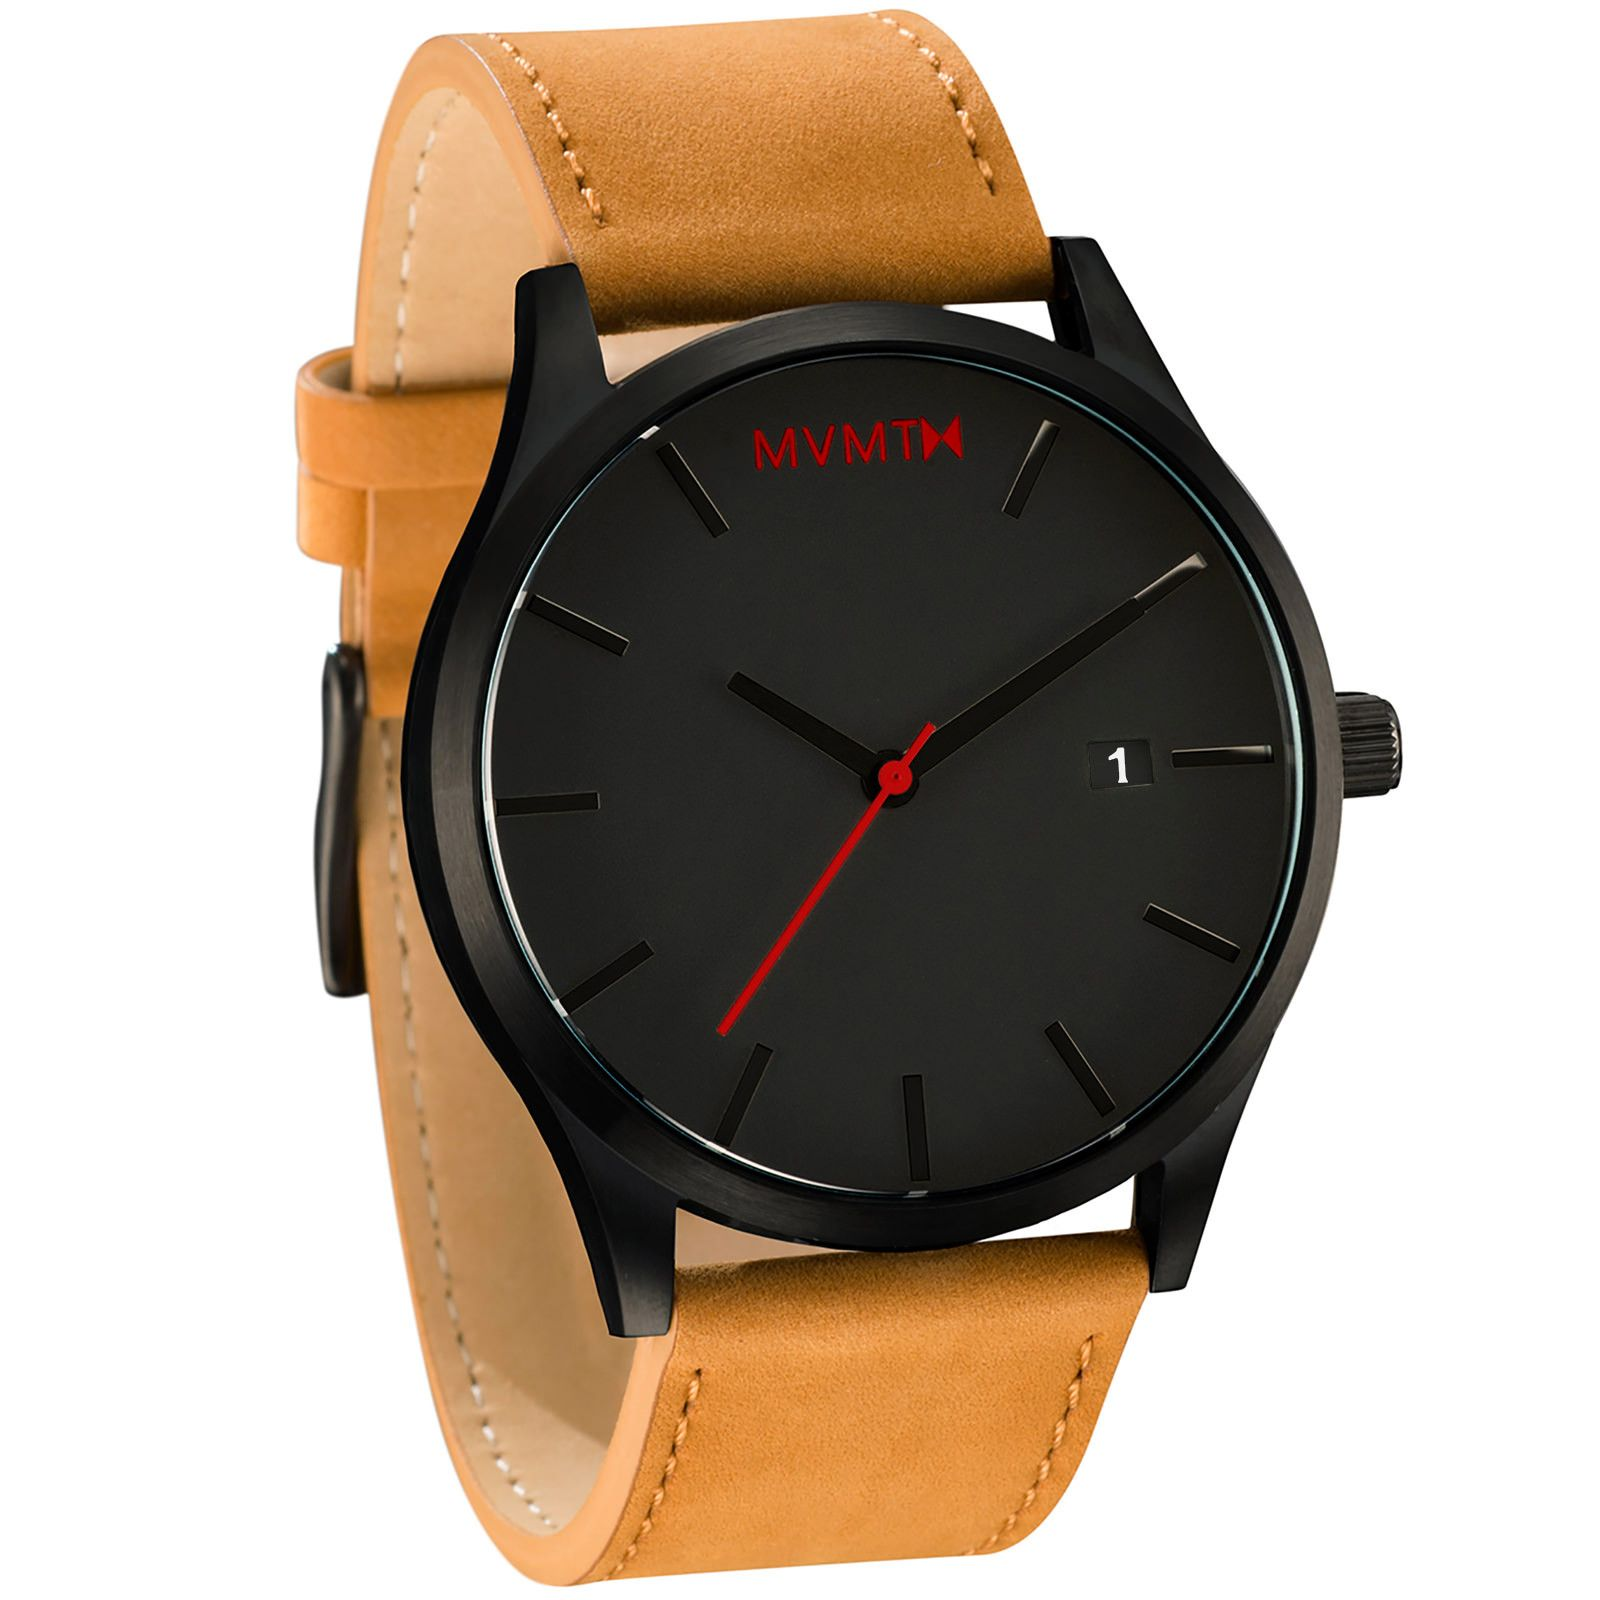 with casual week brown classic calendar big mens watches leather amazon wrist analog dp waterproof band black date retro wristwatch face dress unique business number watch quartz com fashion